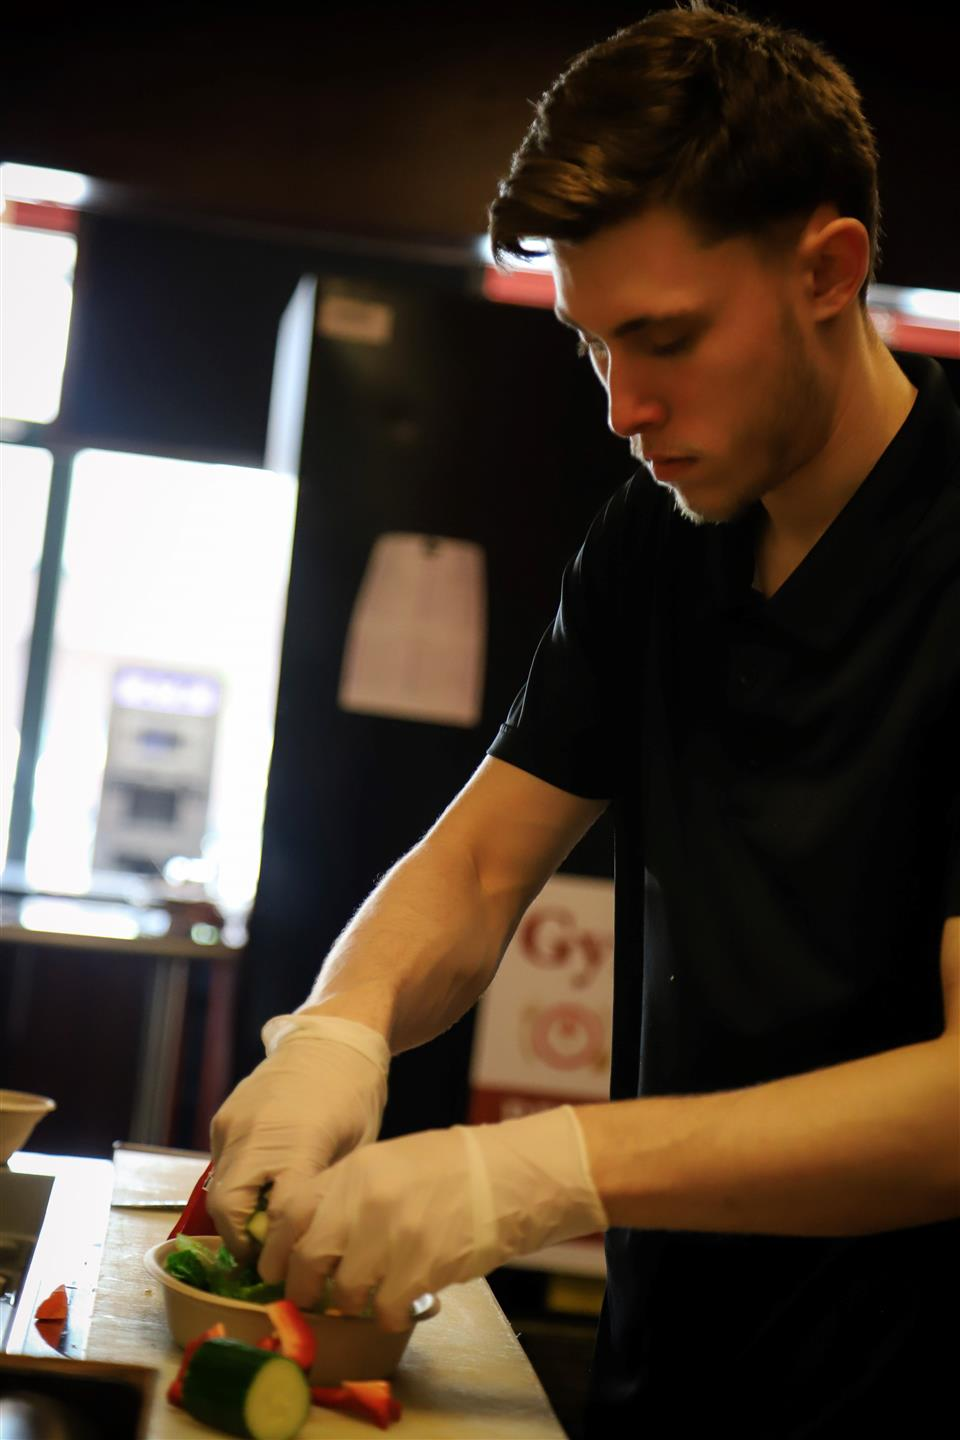 an employee prepping food in the kitchen